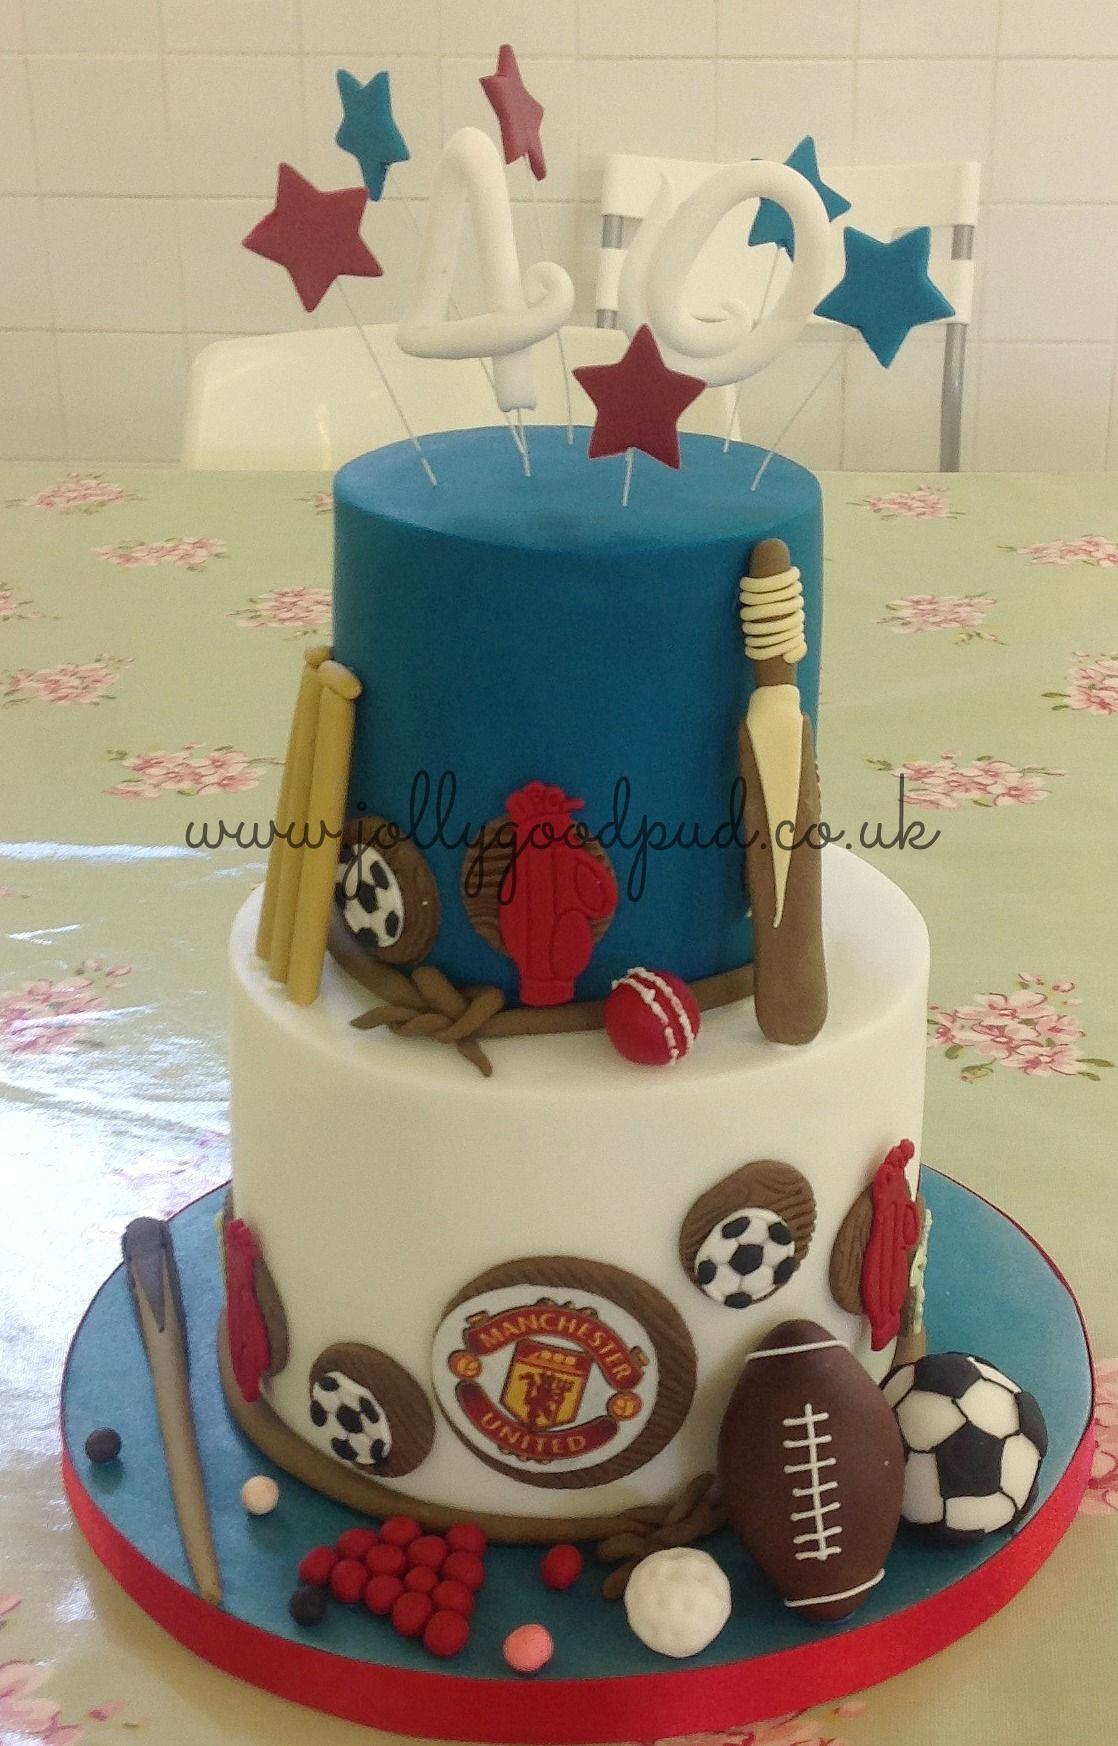 Sporty Mans Birthday Cake From The Jolly Good Pud Company Www